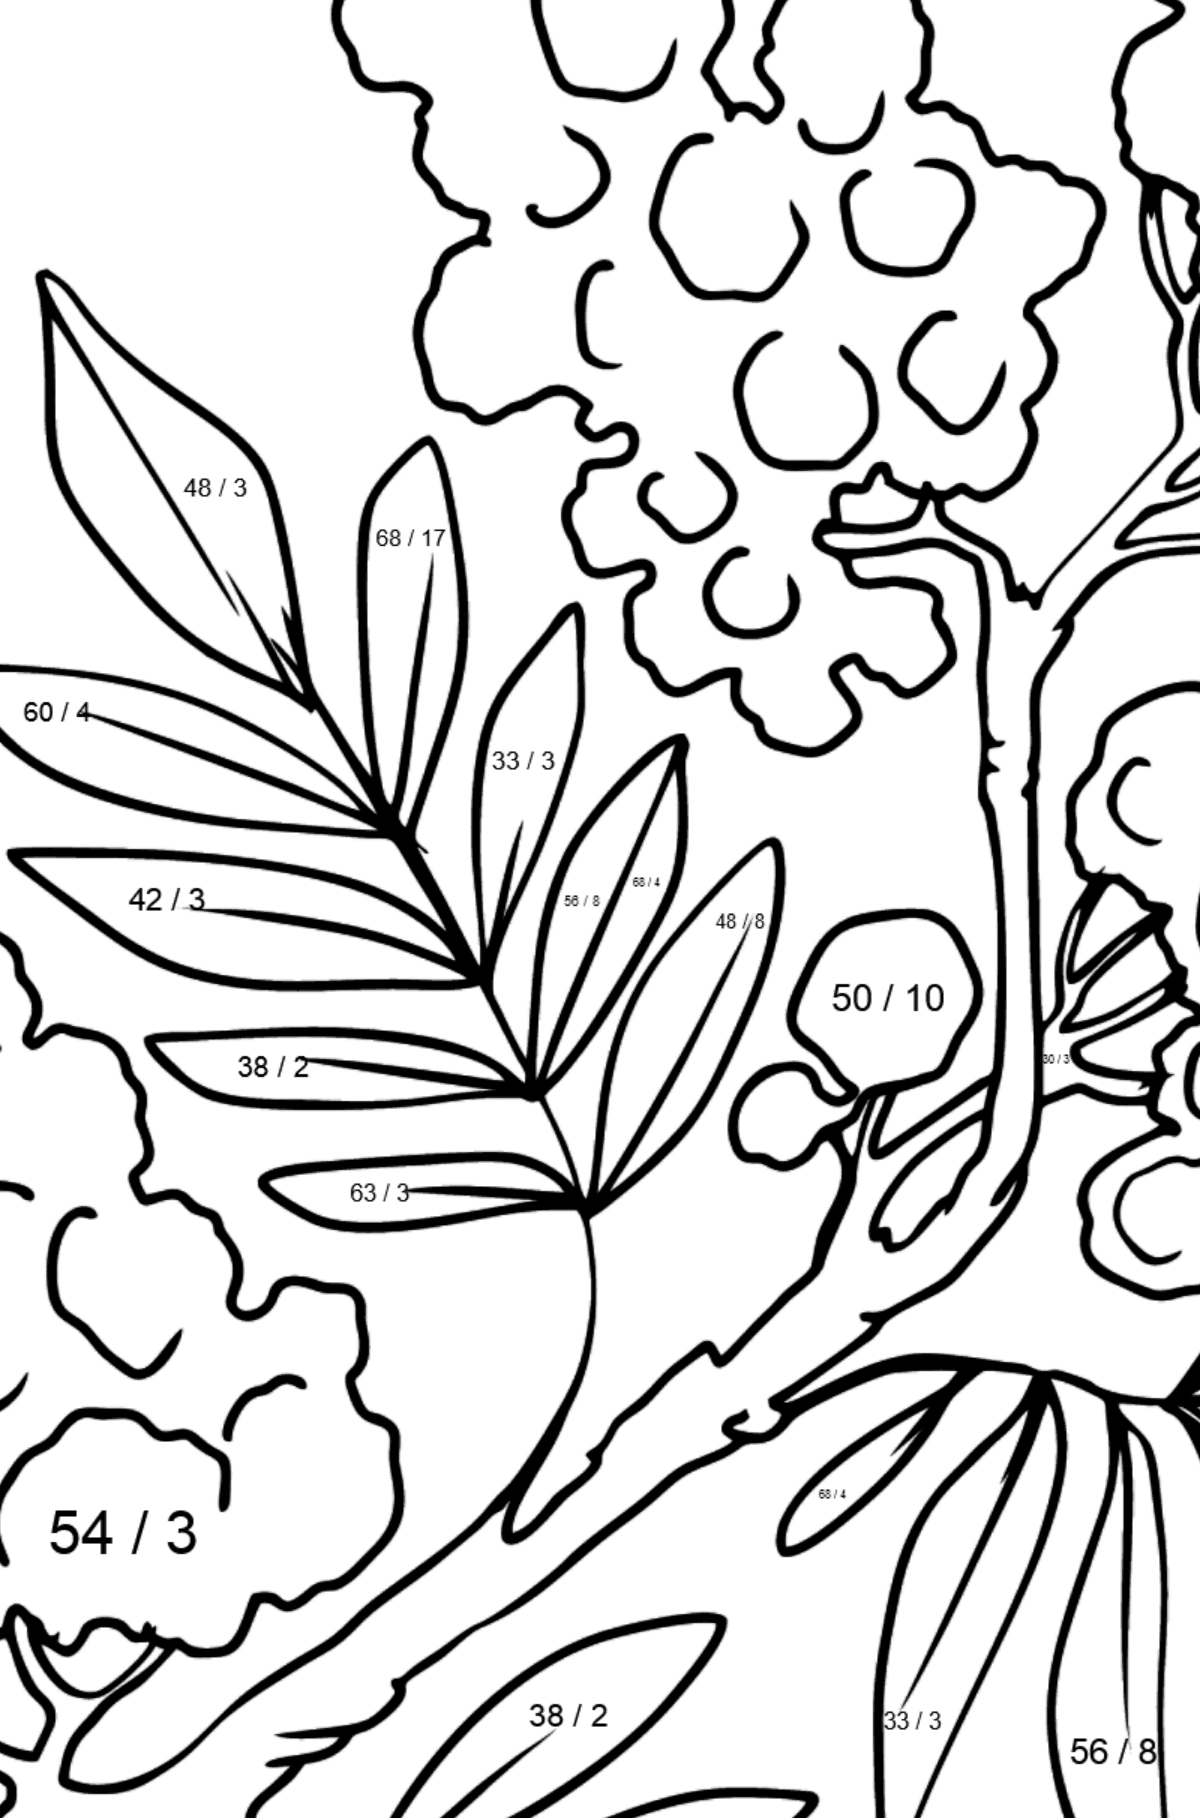 Flower Coloring Page - Mimosa - Math Coloring - Division for Kids